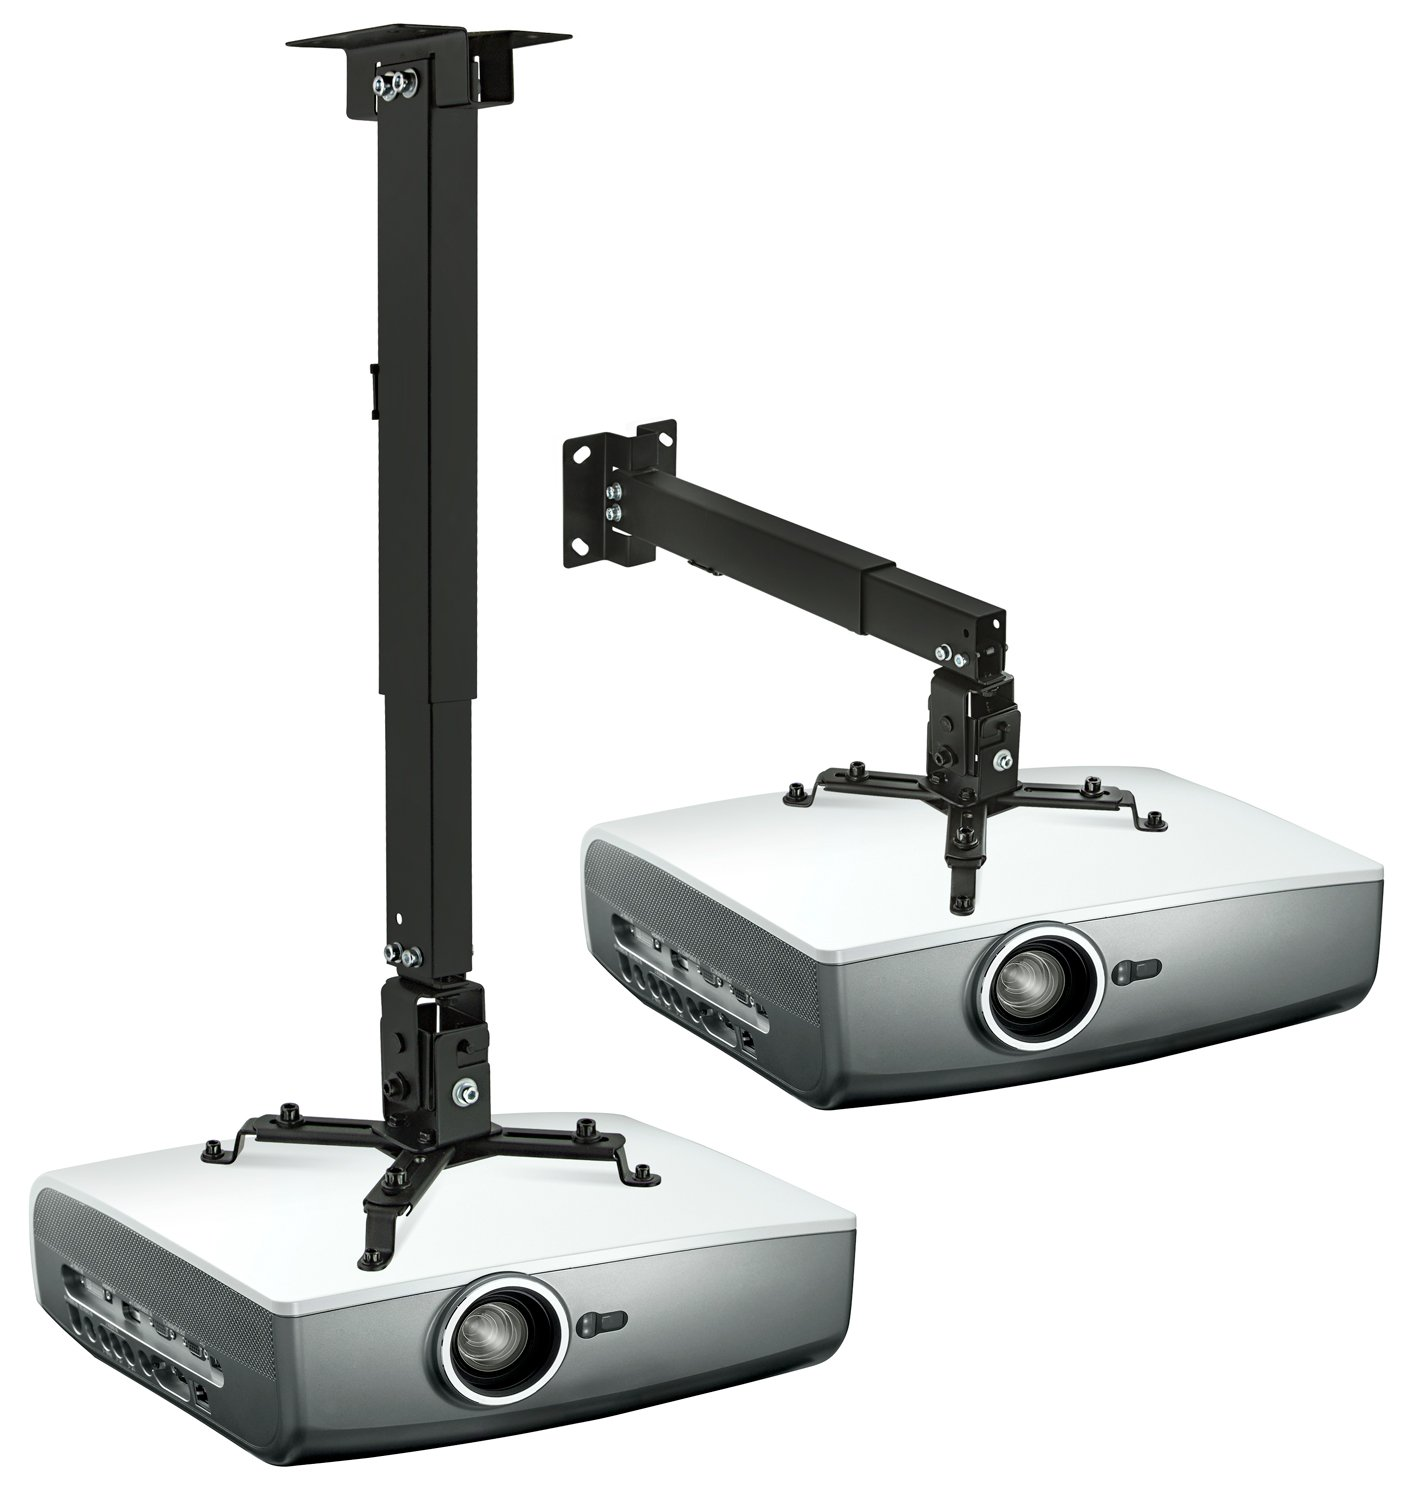 Mount-It! Wall or Ceiling Projector Mount with Universal LCD/DLP Mounting for Epson, Optoma, Benq, ViewSonic Projectors, 44lb Load Capacity, Black (MI-604)